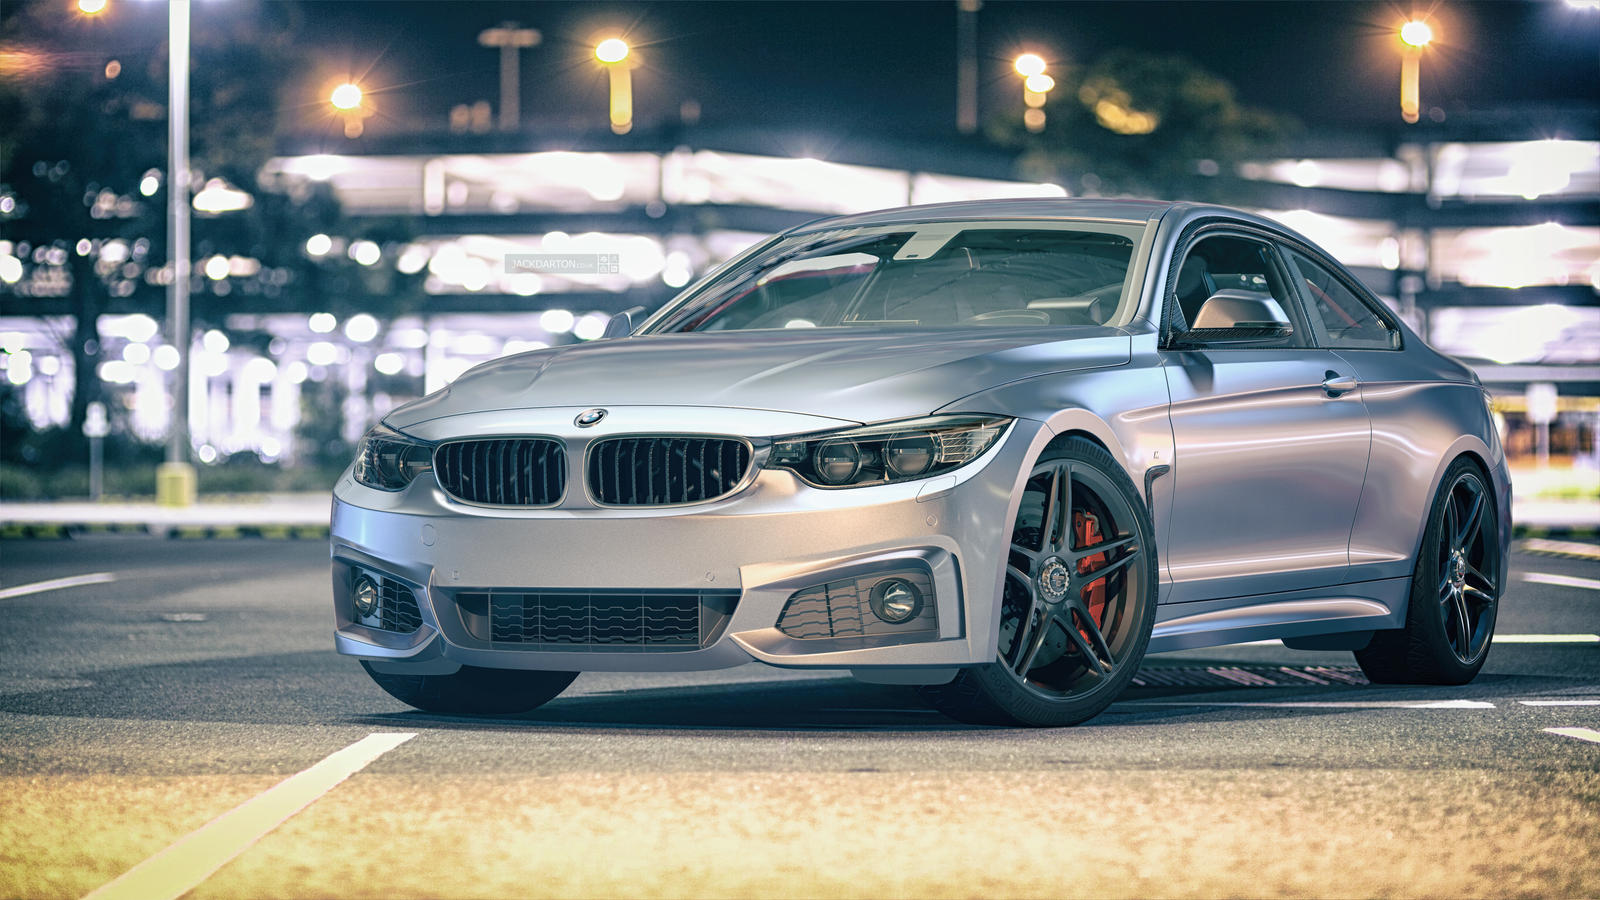 bmw 4 series m sport by jackdarton on deviantart. Black Bedroom Furniture Sets. Home Design Ideas